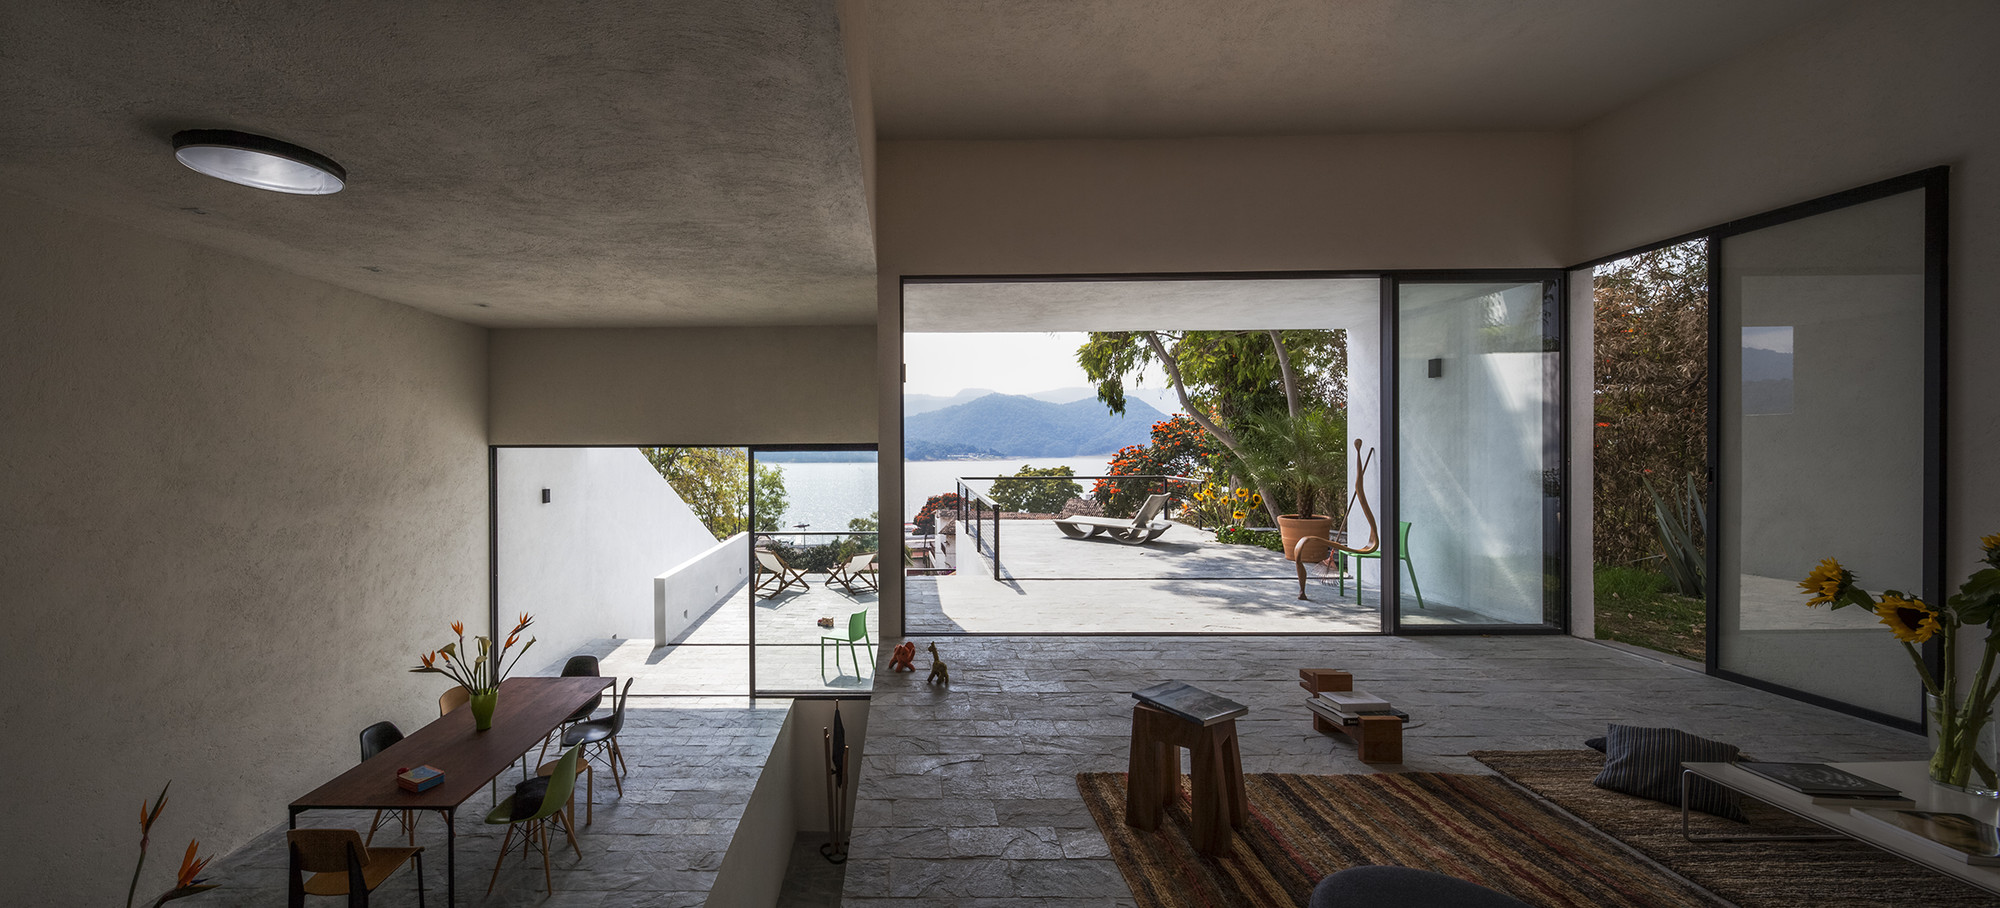 House of stairs dellekamp arquitectos archdaily - Cm arquitectos ...